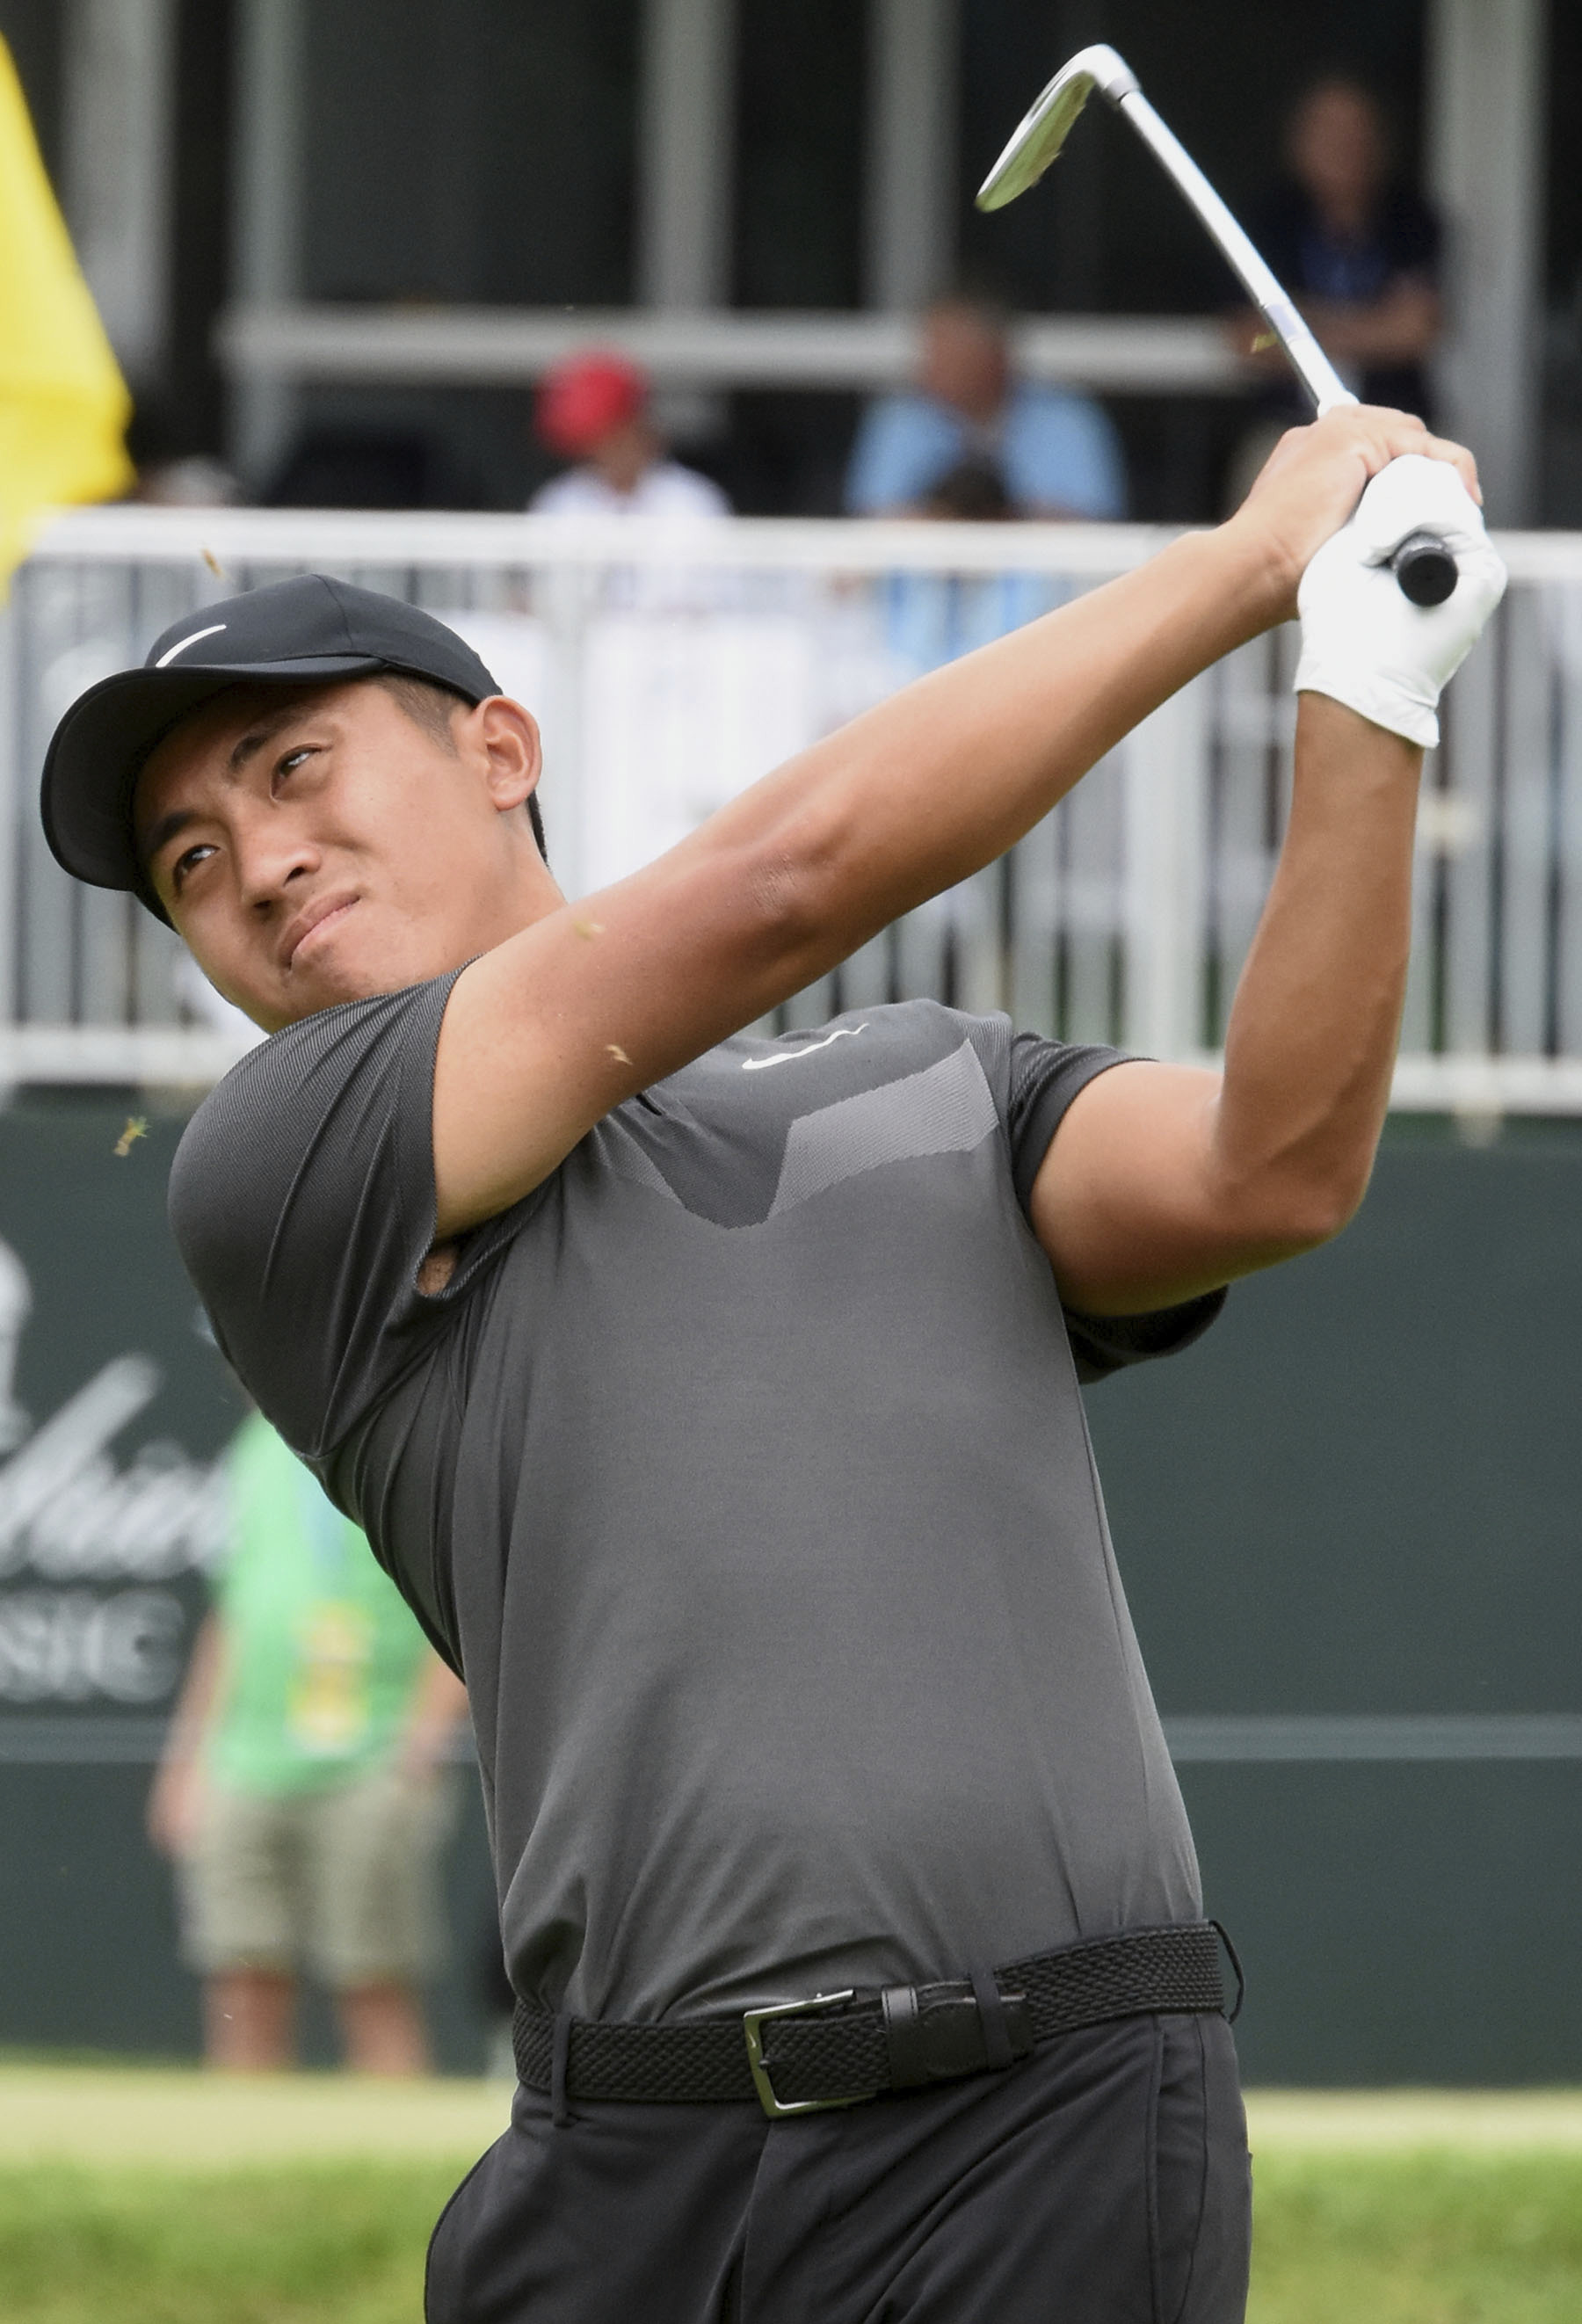 C.T. Pan watches his tee shot on the 18th hole during the first round of the Greenbrier Classic golf tournament, Thursday, July 6,  2017, in White Sulphur Springs, W.Va. (Rick Barbero/The Register-Herald via AP)